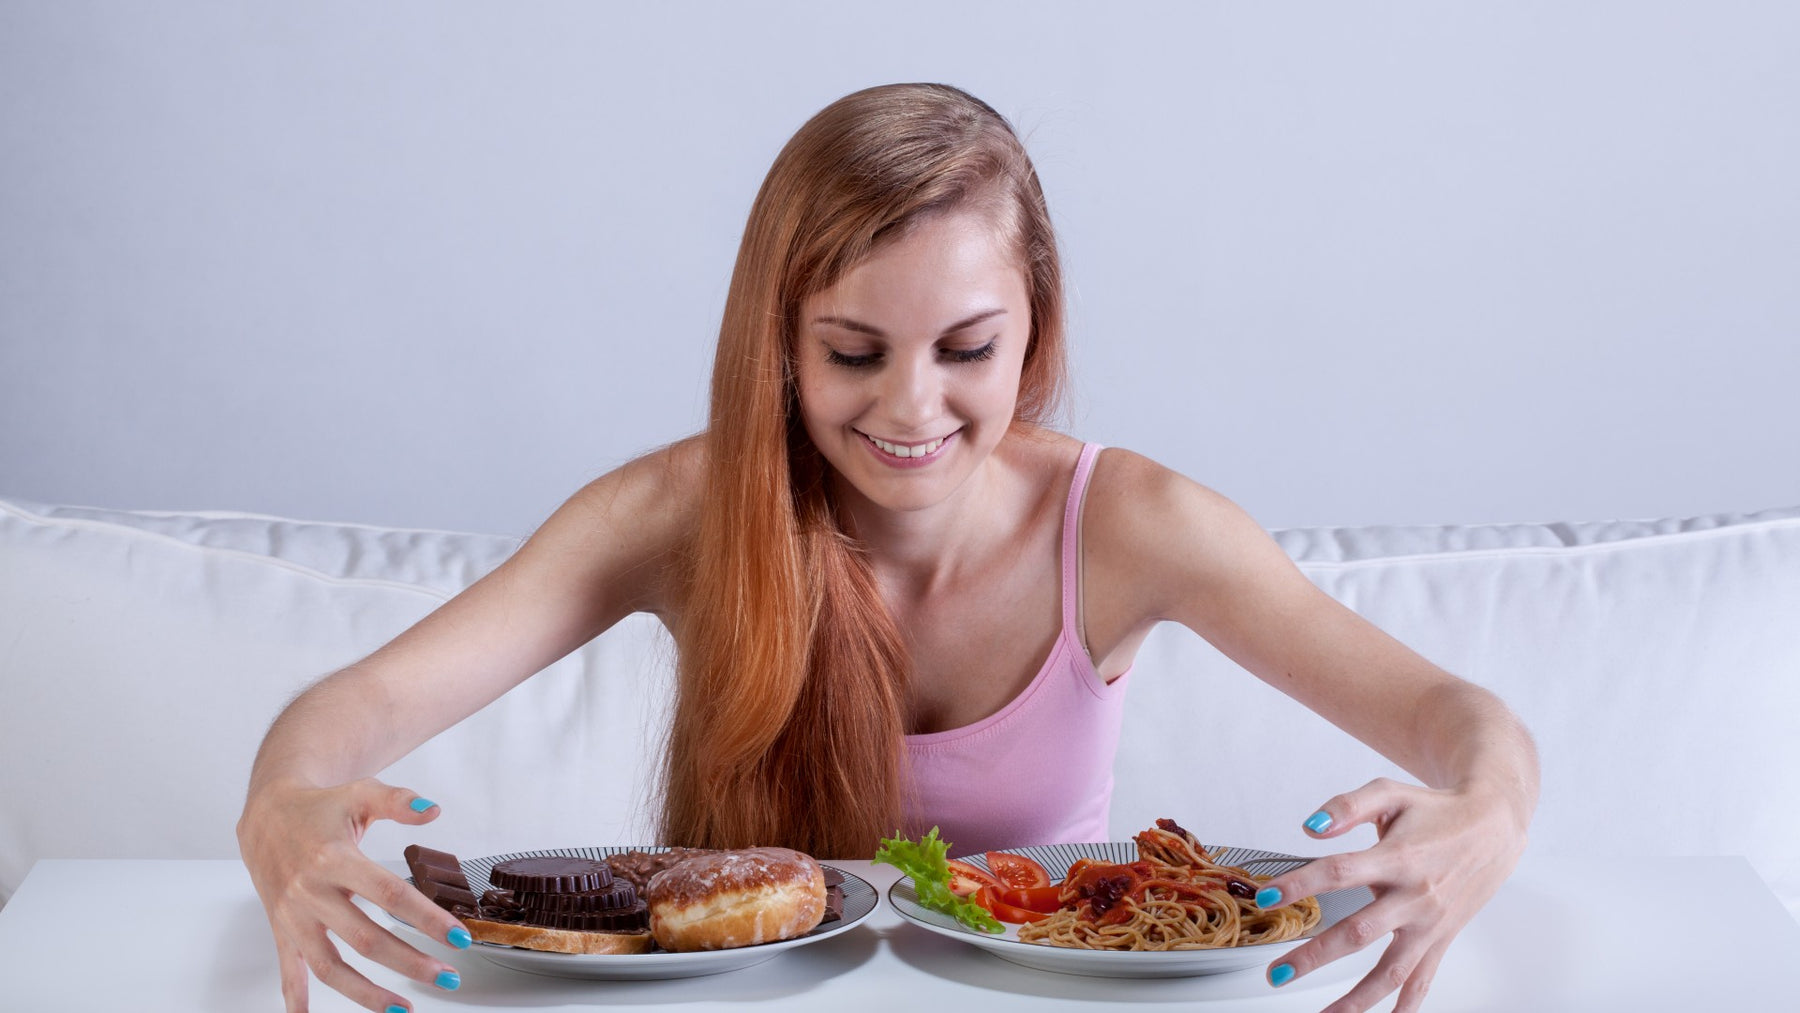 6 Strategies That Can Help the Binge Eater